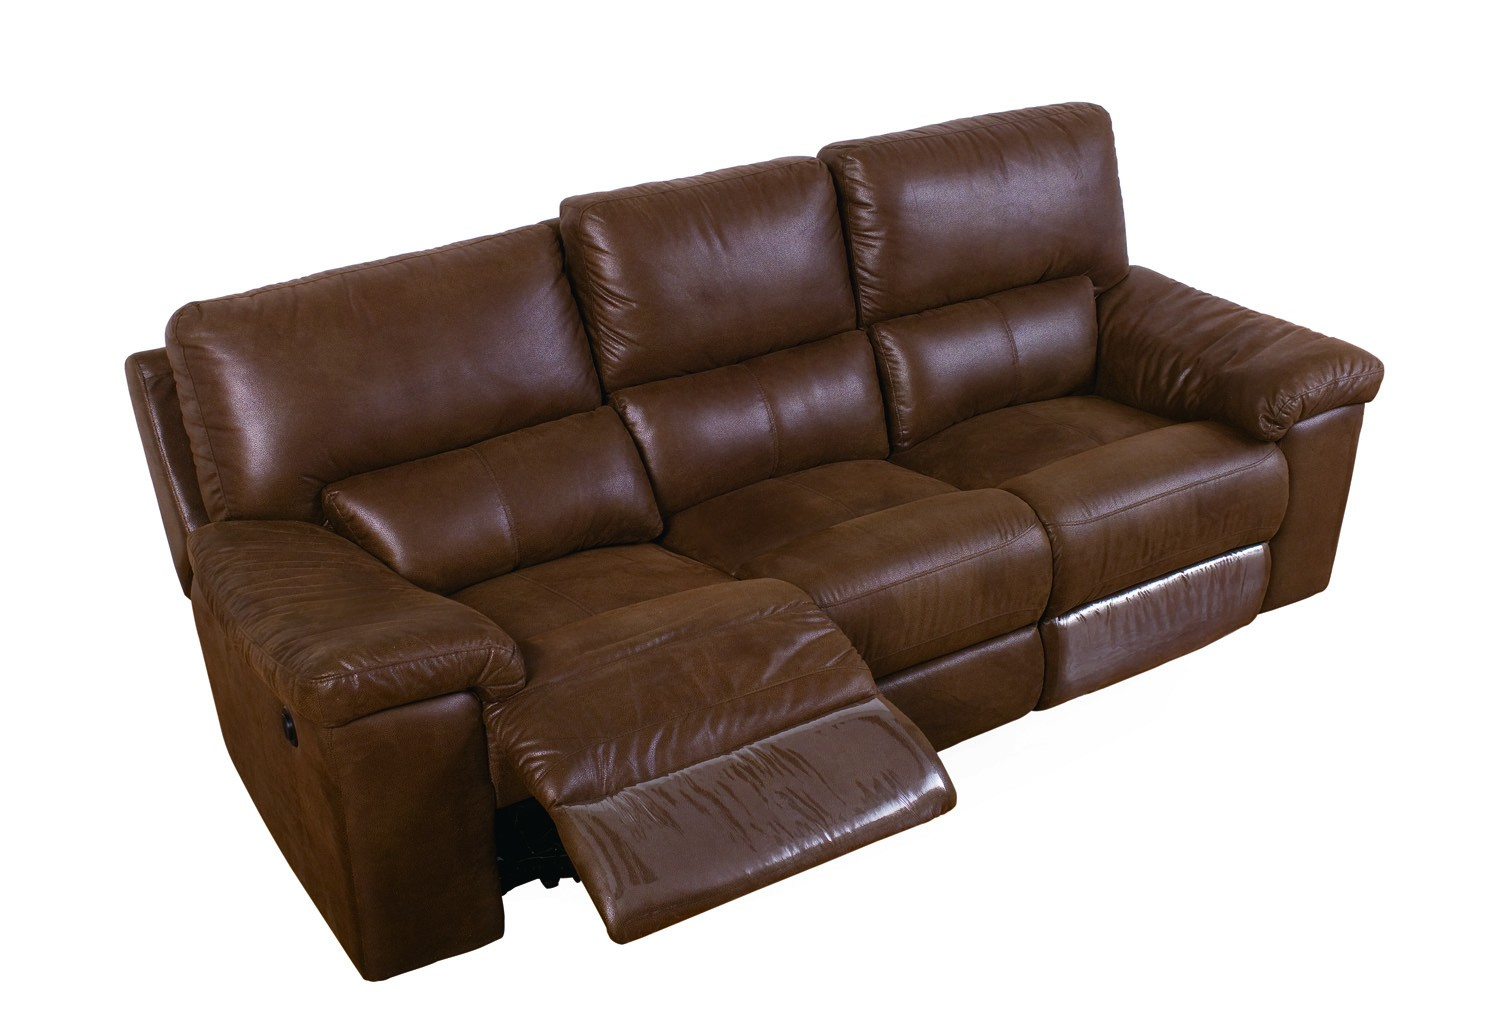 New Electric Recliner Sofa 93 For Your Contemporary Sofa Inspiration with Electric Recliner Sofa